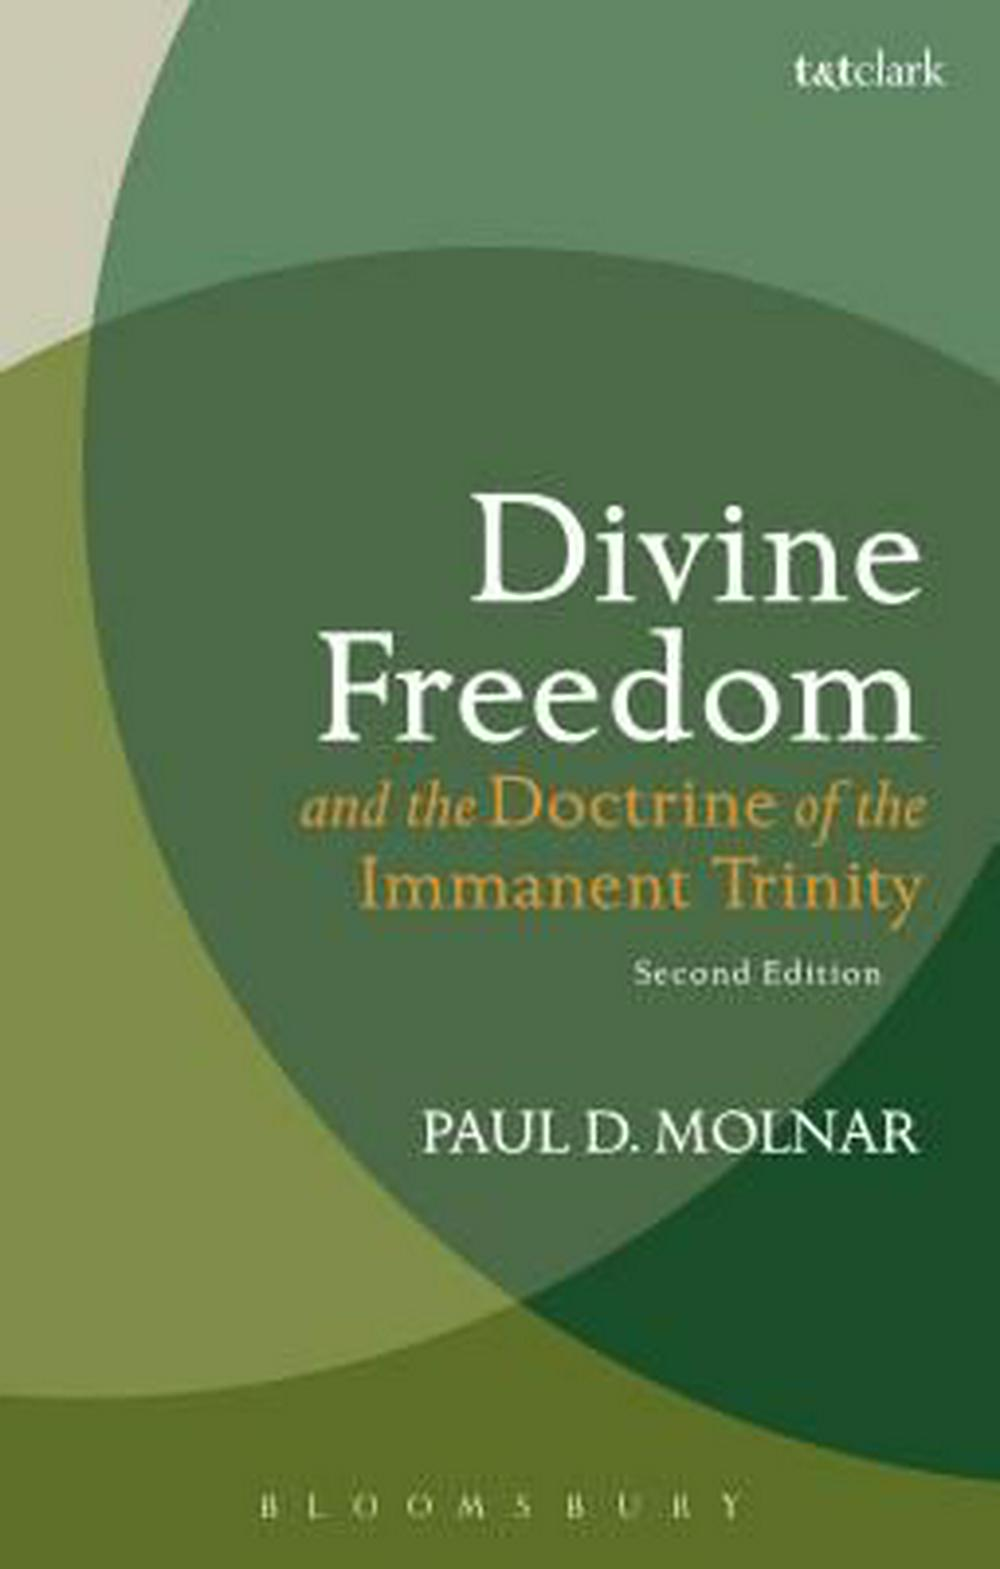 Divine Freedom and the Doctrine of the Immanent Trinity: In Dialogue with Karl Barth and Contemporary Theology (T&t Clark Studies in Systematic Theology) by Paul D., Professor Molnar, ISBN: 9780567656797